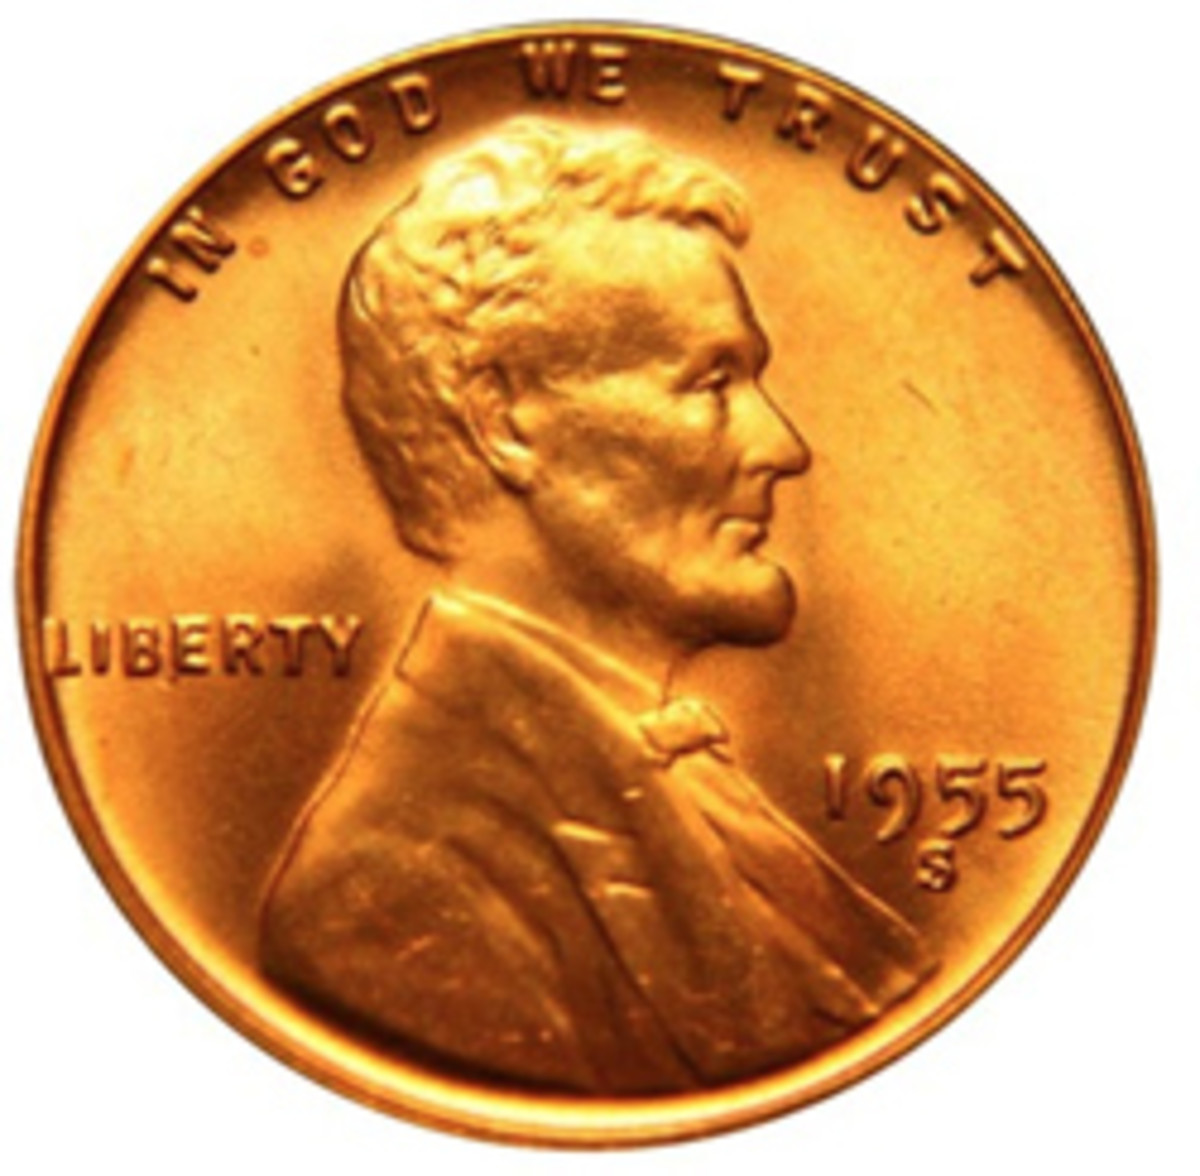 The 1955-S Lincoln cent, which the author found to be extremely elusive in circulation. (Image courtesy www.usacoinbook.com)